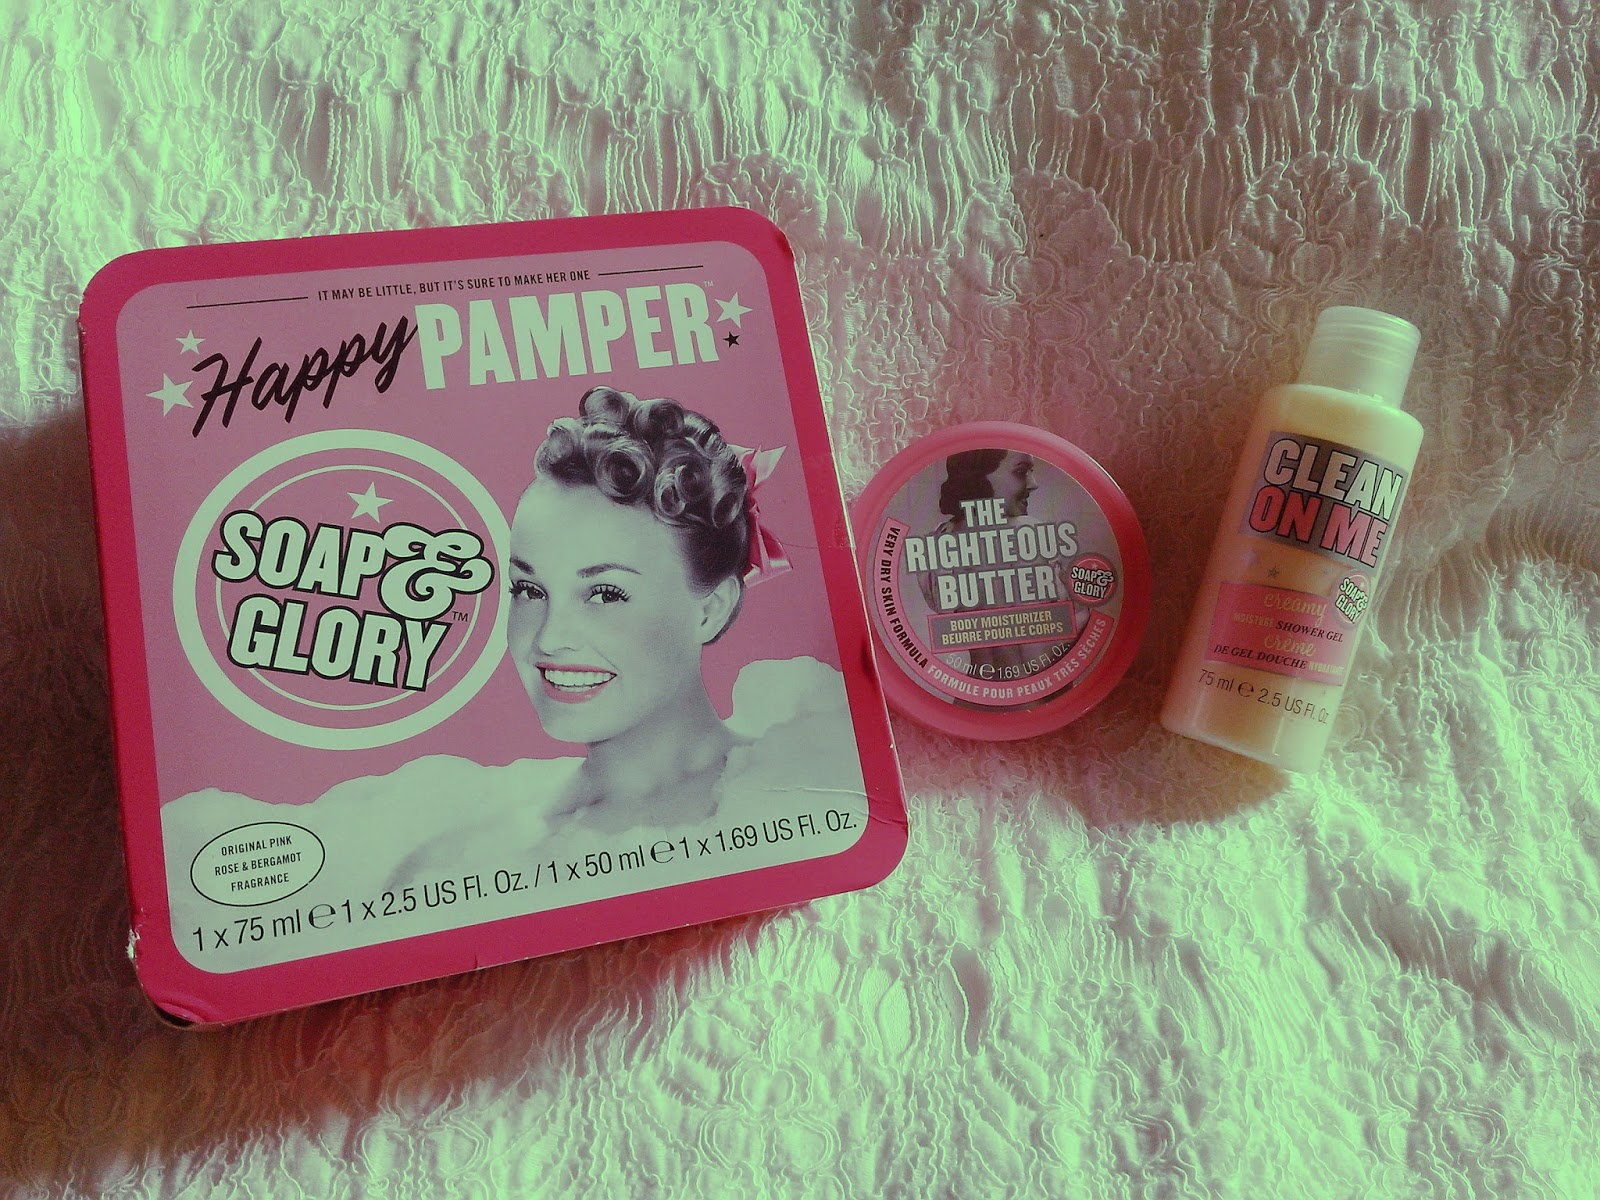 Cienanigans Makeupinboxph Haul Soap Ampamp Glory Irresistibubble Gift Set The First One That I Have Here Is Their Happy Pamper This Includes Deluxe Sizes Of Clean On Me Shower Gel And Righteous Butter Body